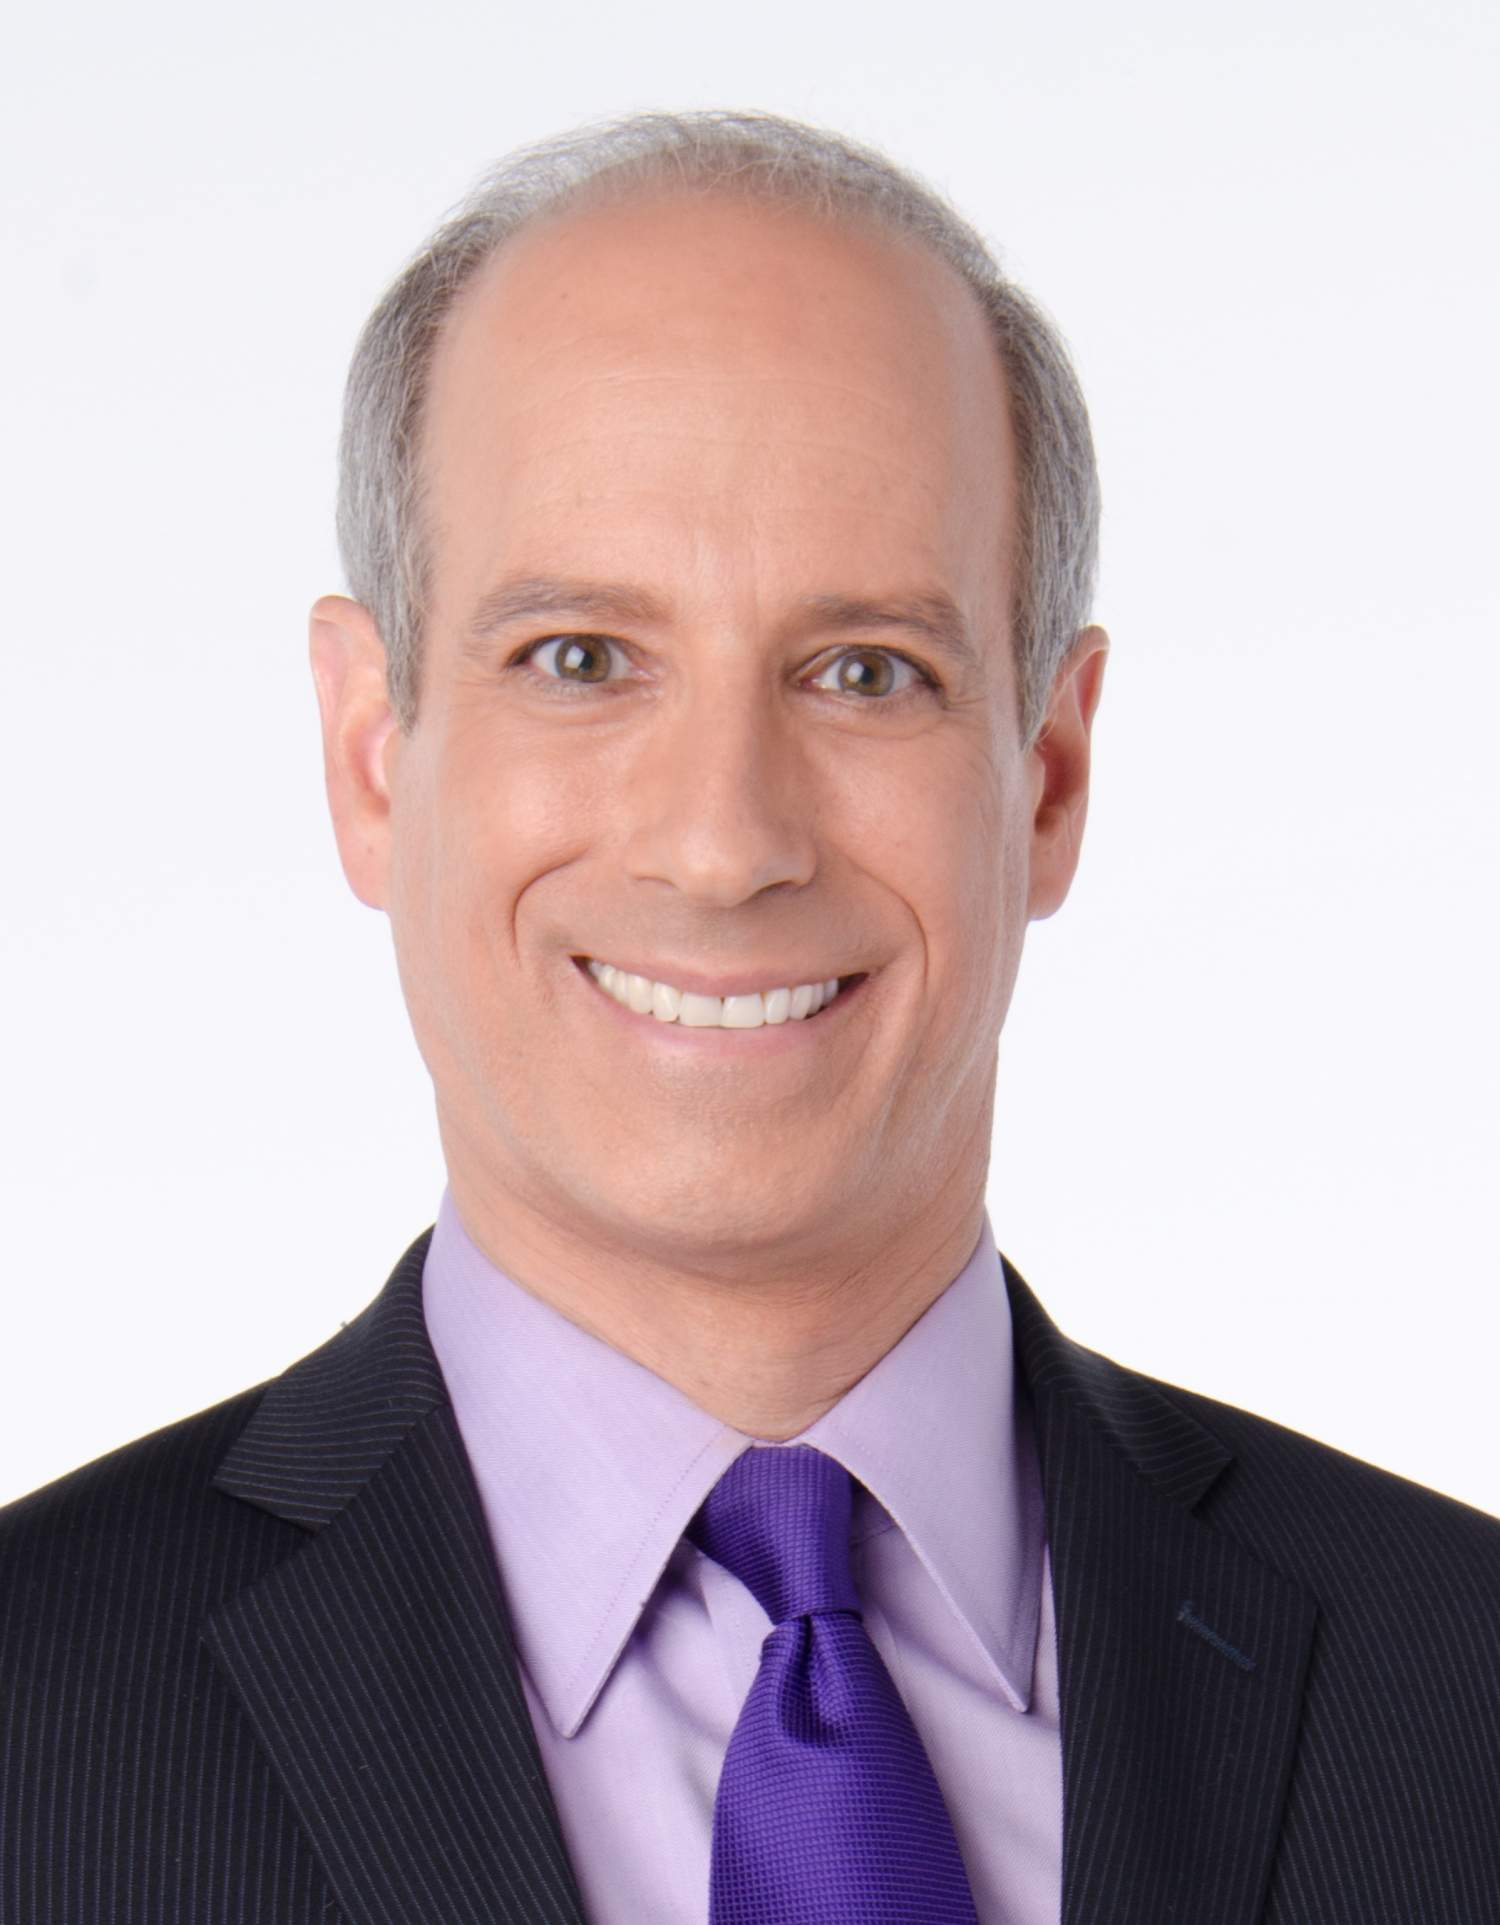 Paul Gross, Meteorologist, WDIV-TV